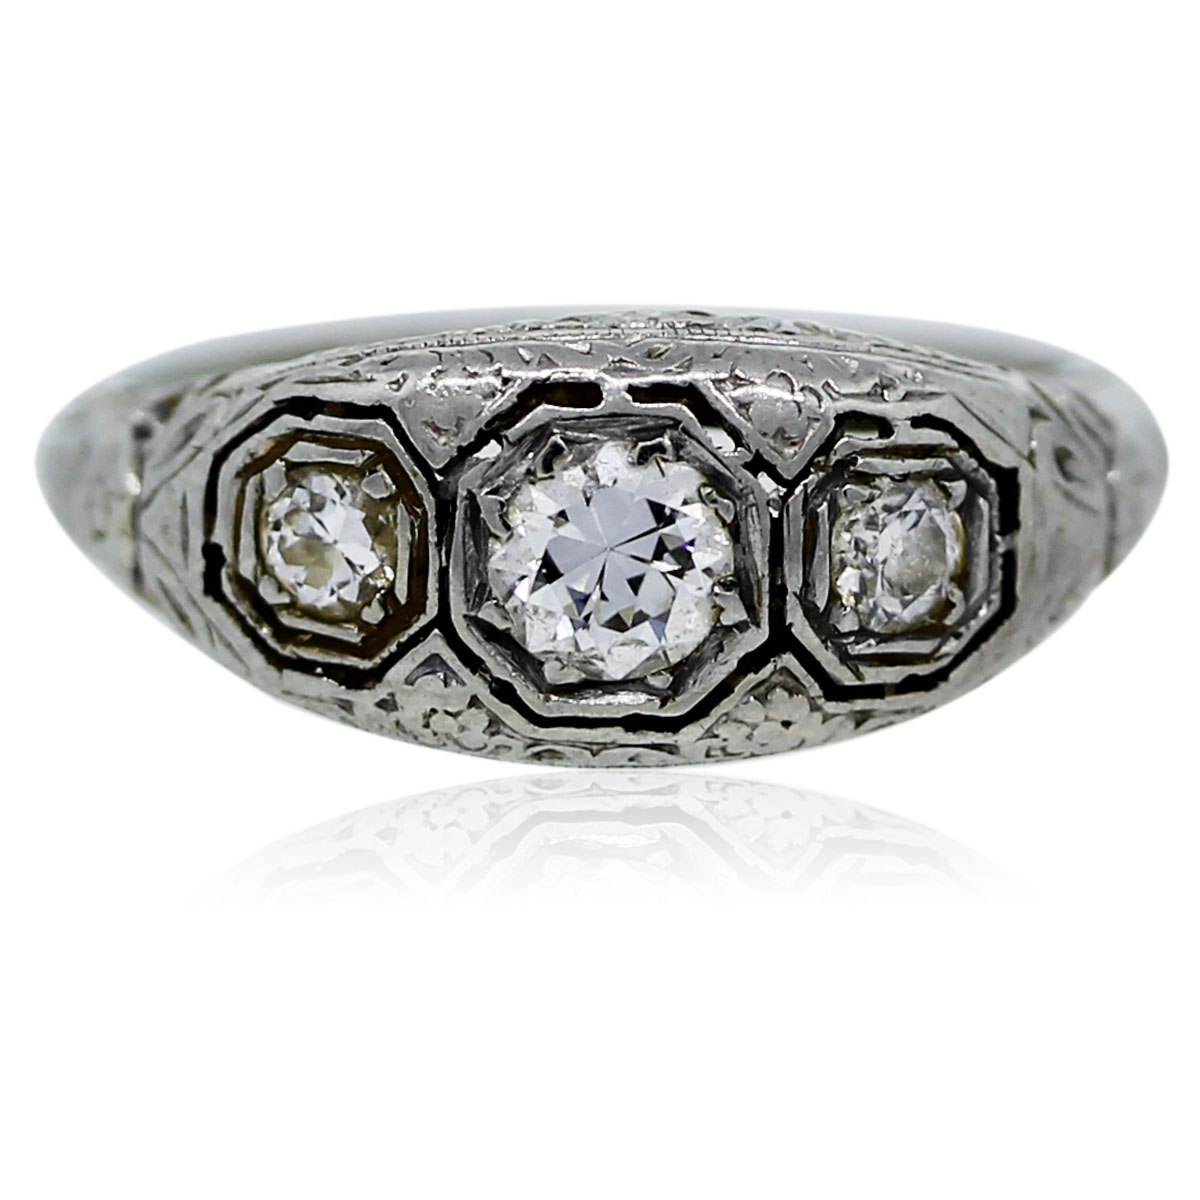 You are viewing this vintage white gold and diamond ring!